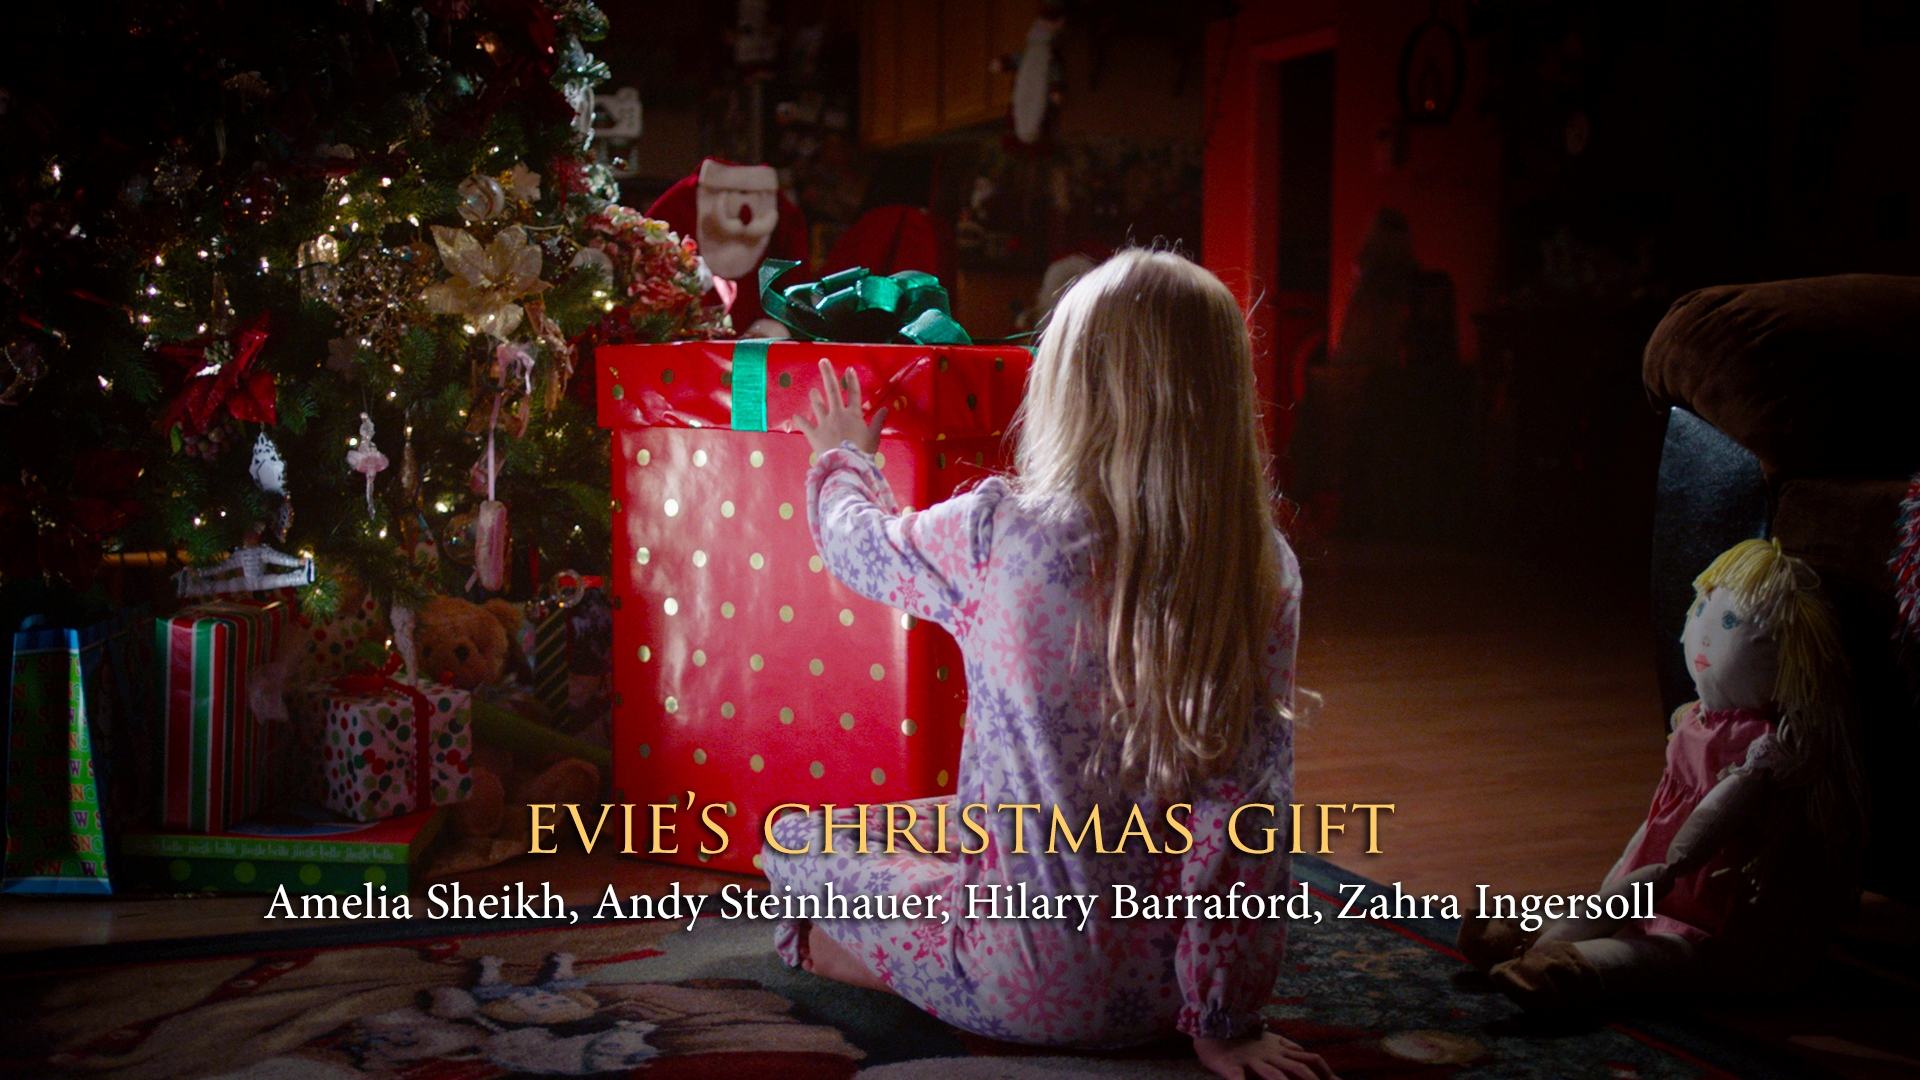 evies christmas gift palm street films - The Christmas Gift Movie Cast